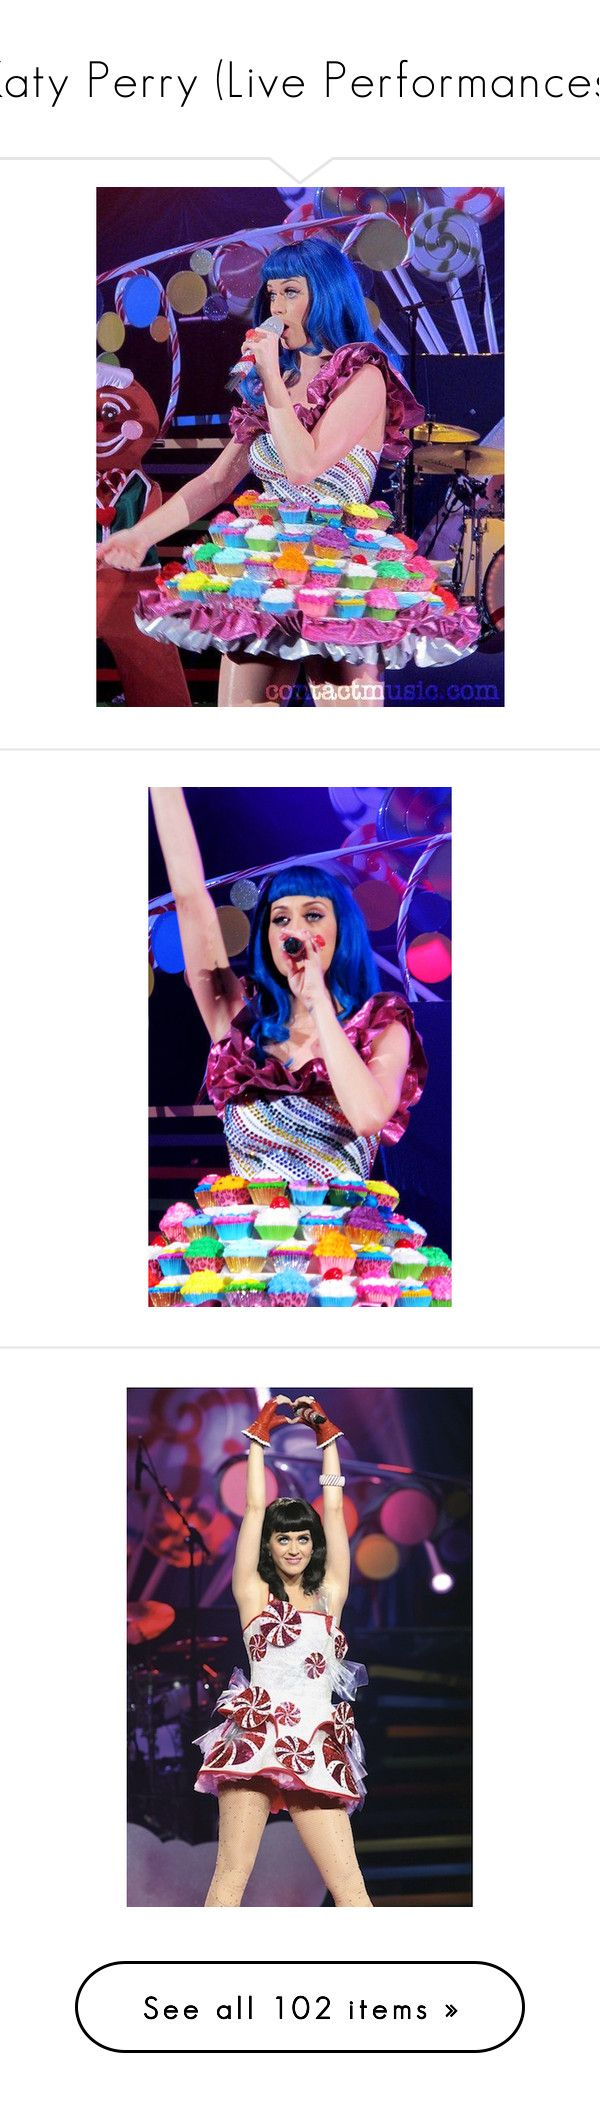 """""""Katy Perry (Live Performances)"""" by nataliemcmahan ❤ liked on Polyvore featuring katy perry, celebrity, models, pictures, bright, latex, accessories, b. ella, music and costumes"""